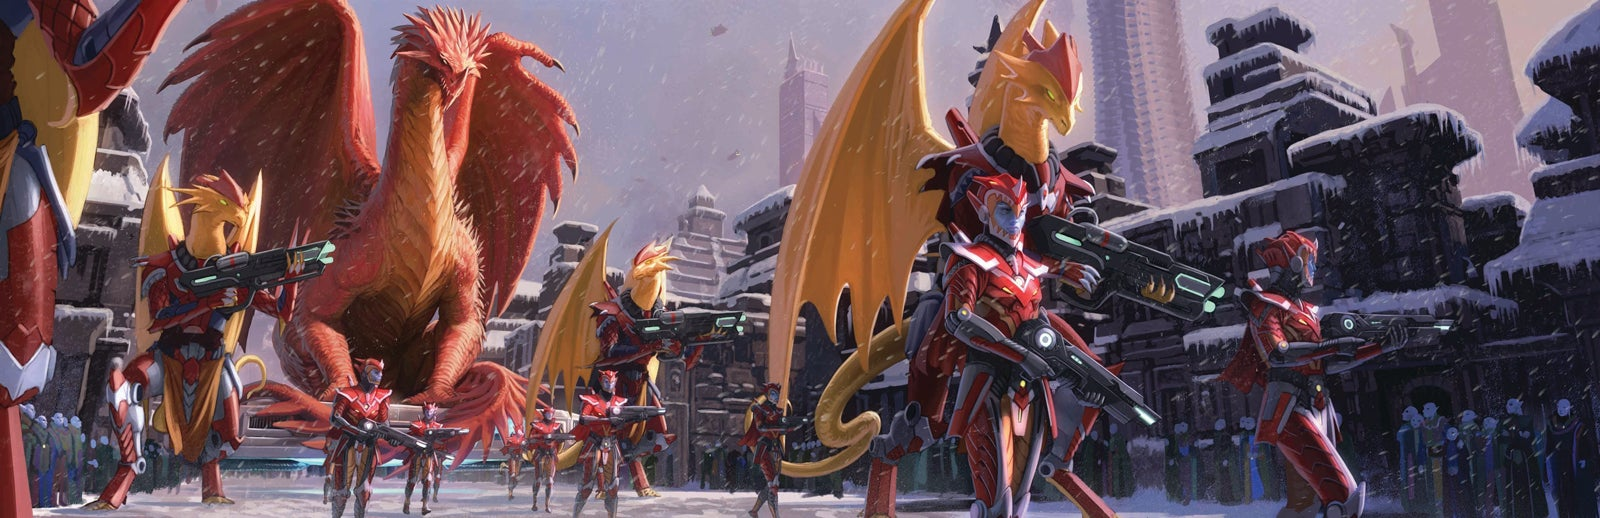 = A military parade consisting of uniformed dragonkin and ryphorians makes its way through a snow-covered city street while a small crowd of citizens looks on. A massive red dragon oversees the proceedings.